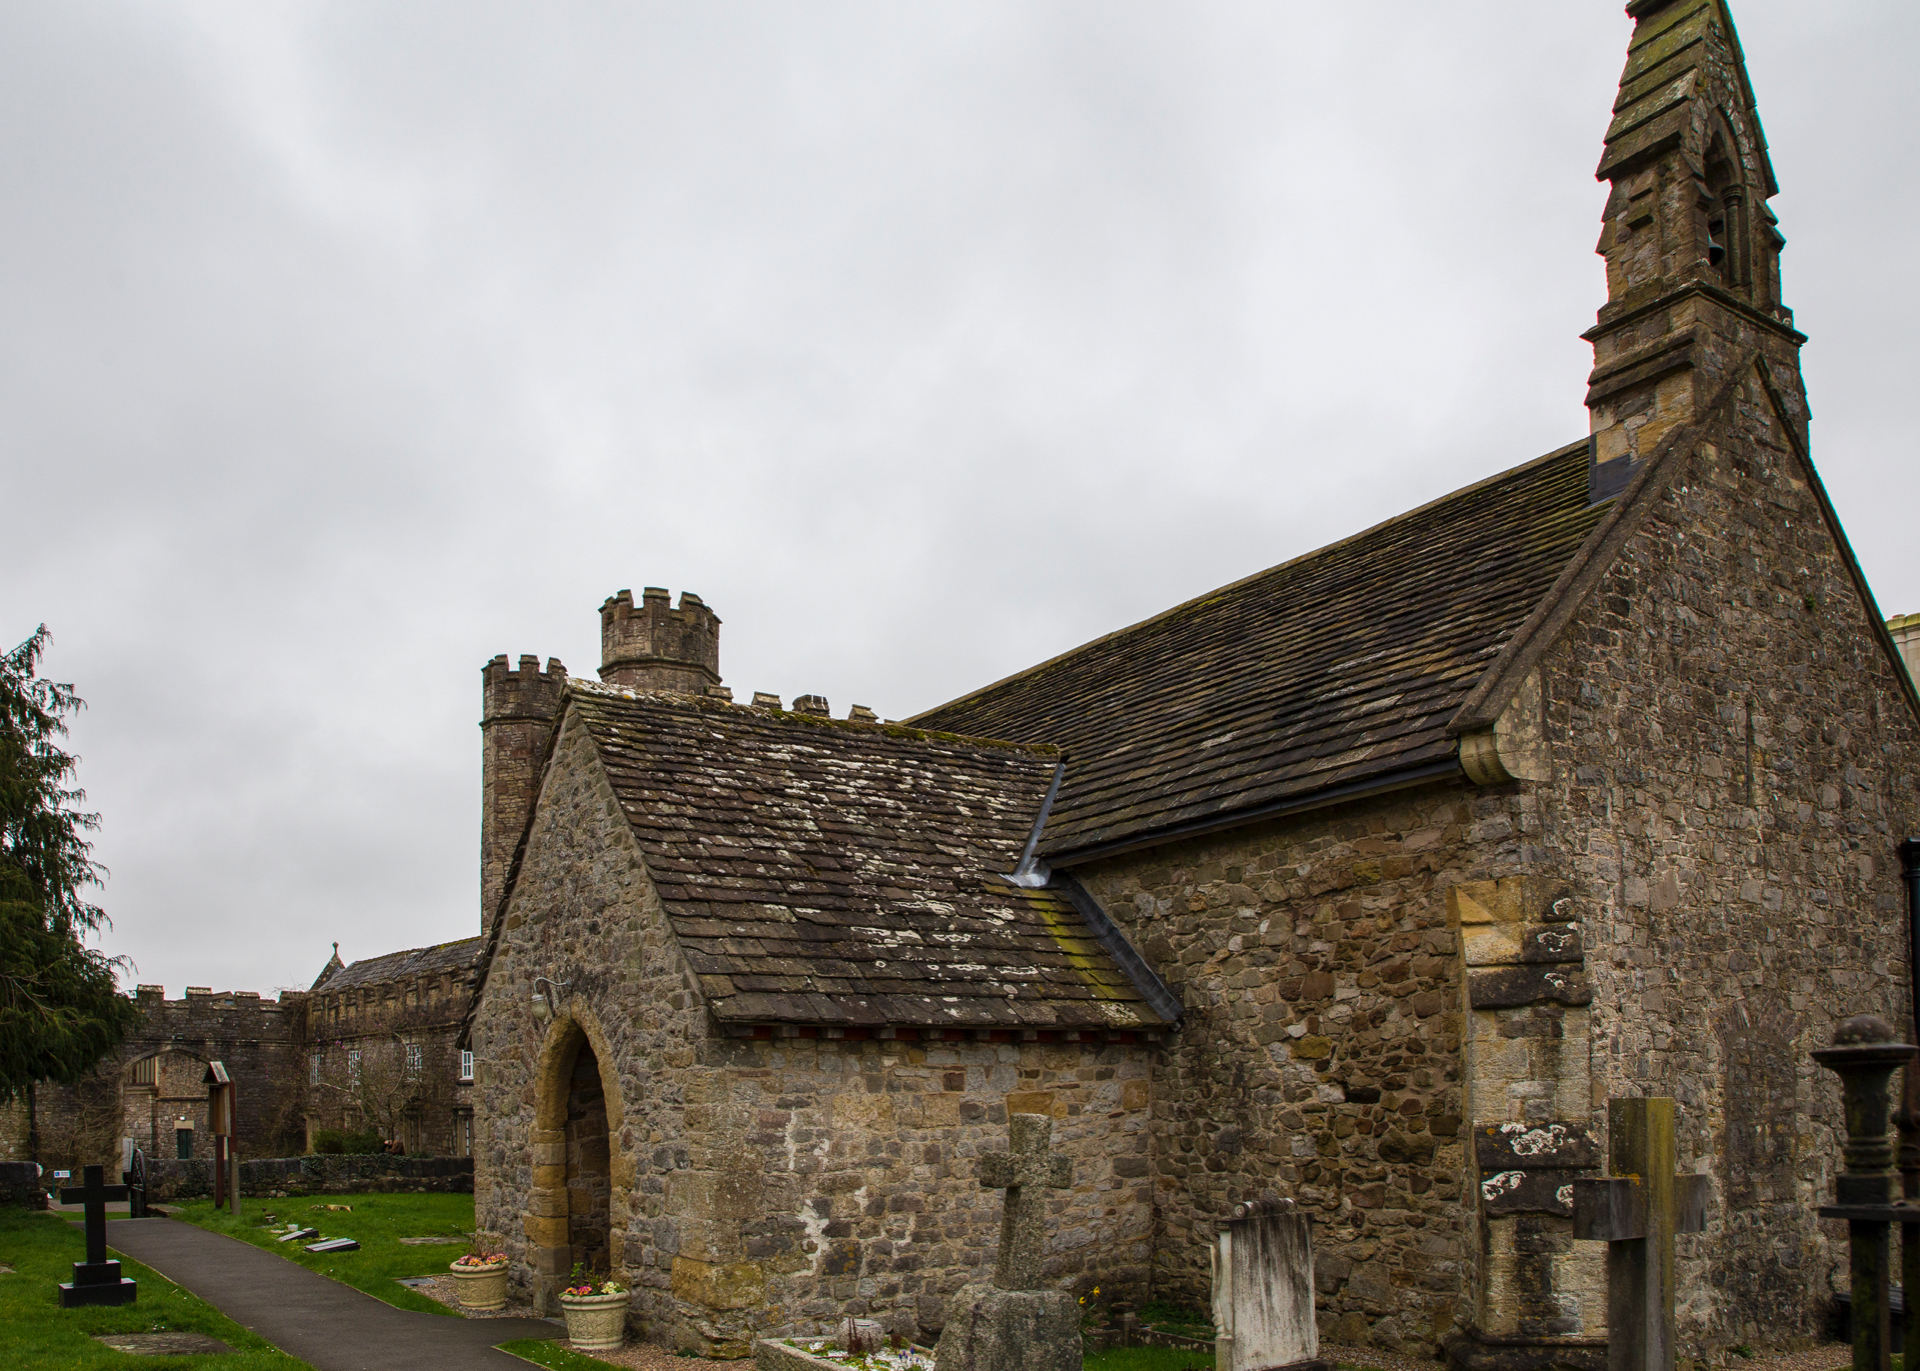 Another view of the old church.